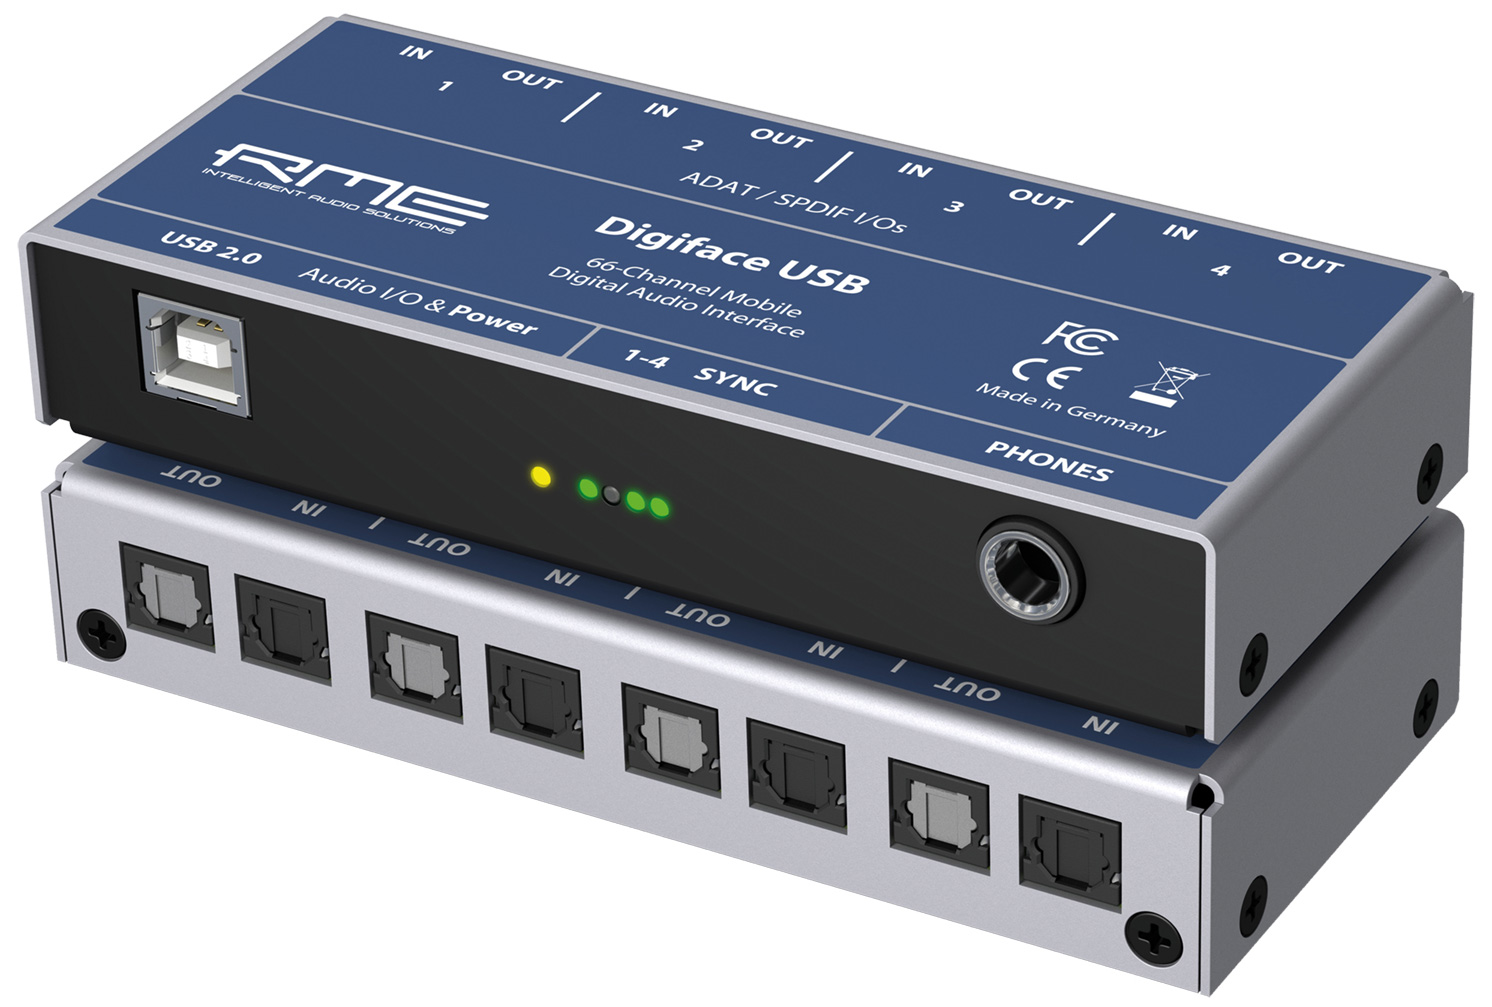 rme digiface usb digital audio interface with adat spdif. Black Bedroom Furniture Sets. Home Design Ideas